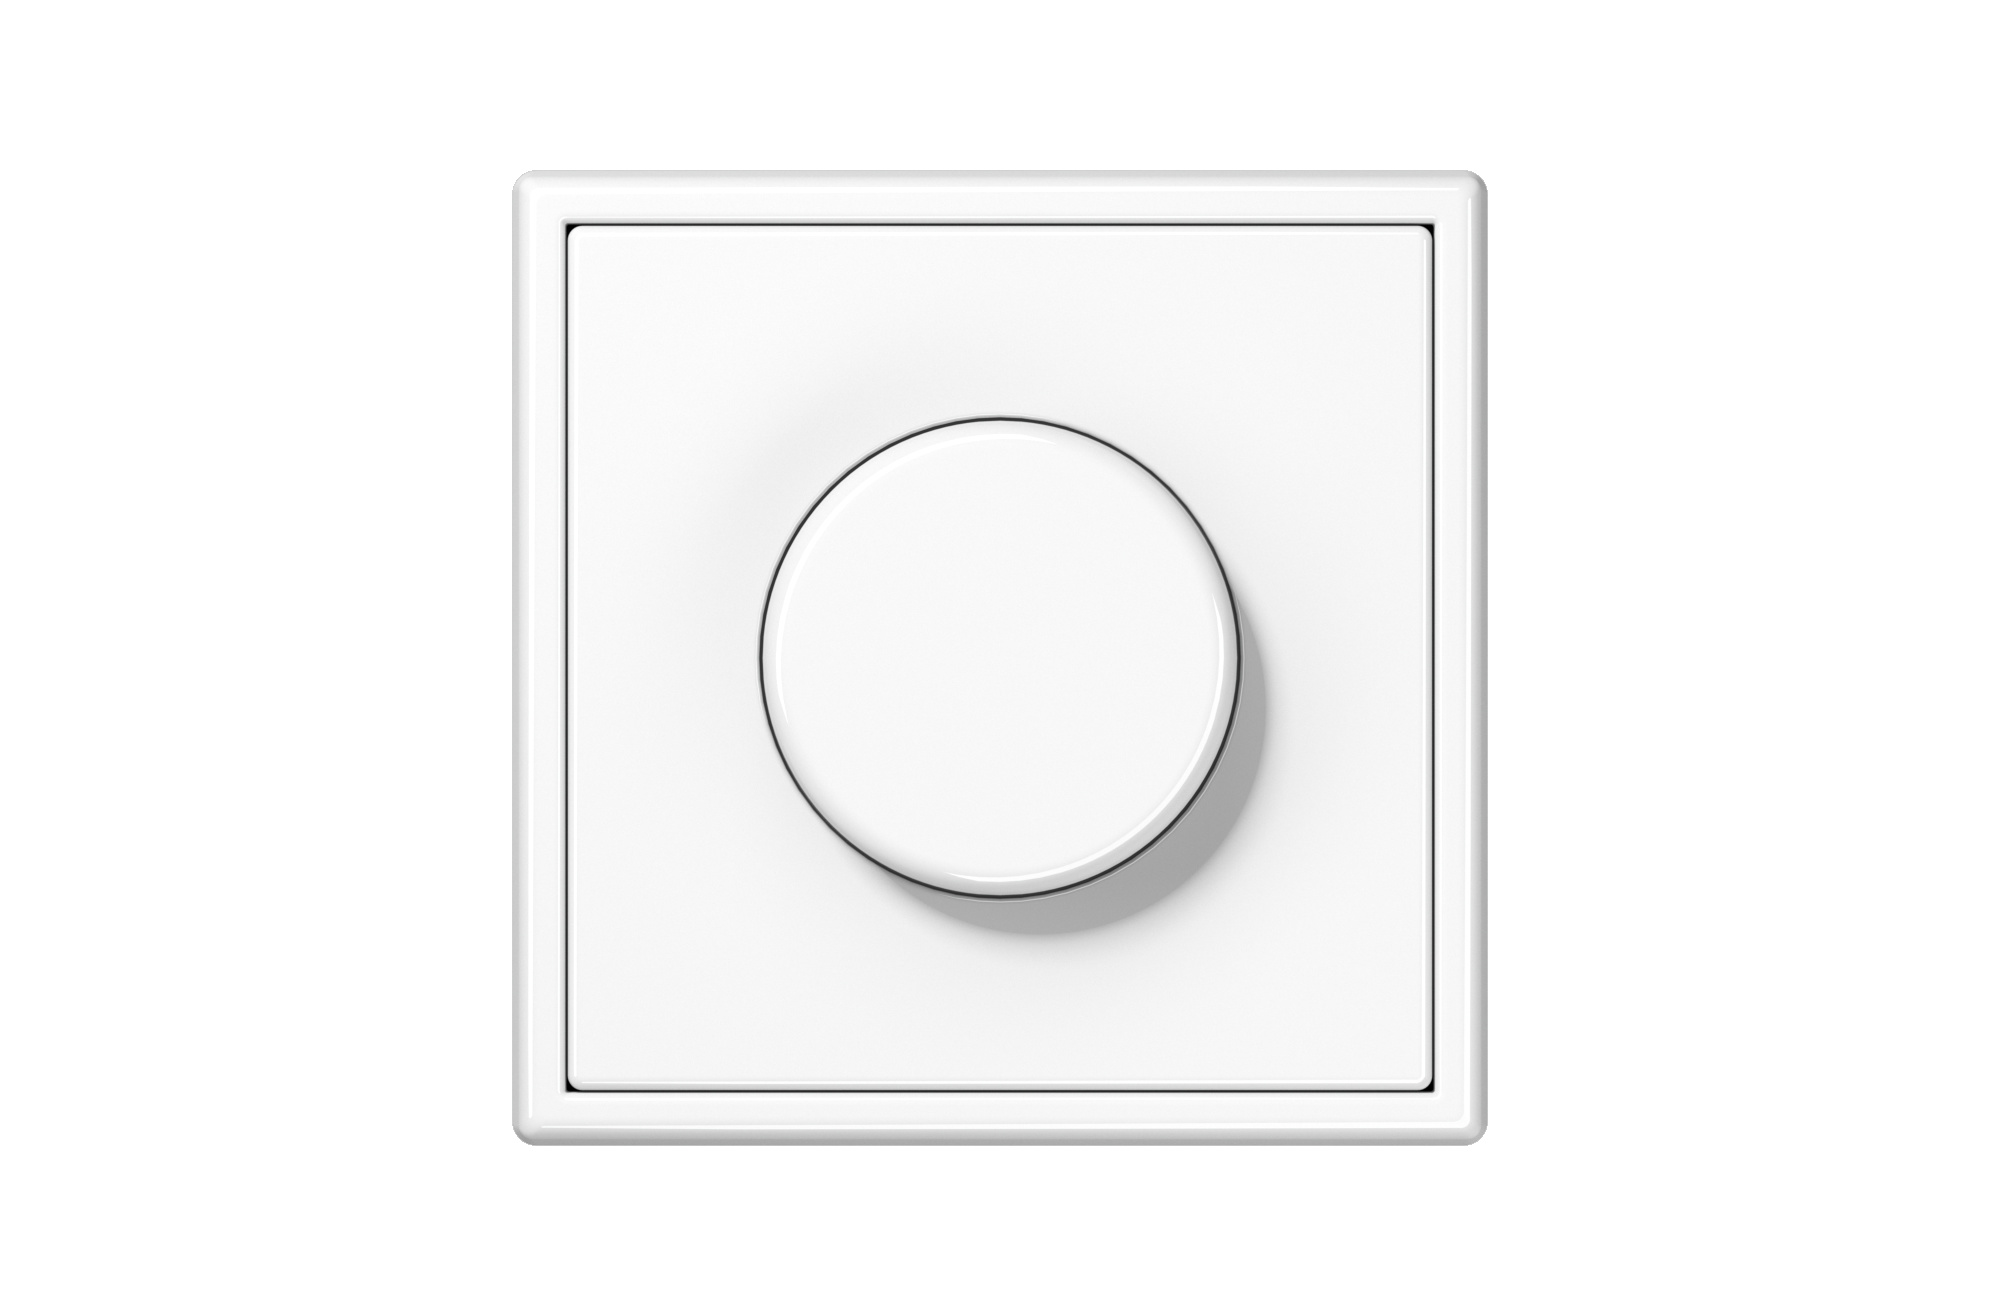 Jung Ls 990 Ls 990 Rotary Dimmer In White By Jung Archello